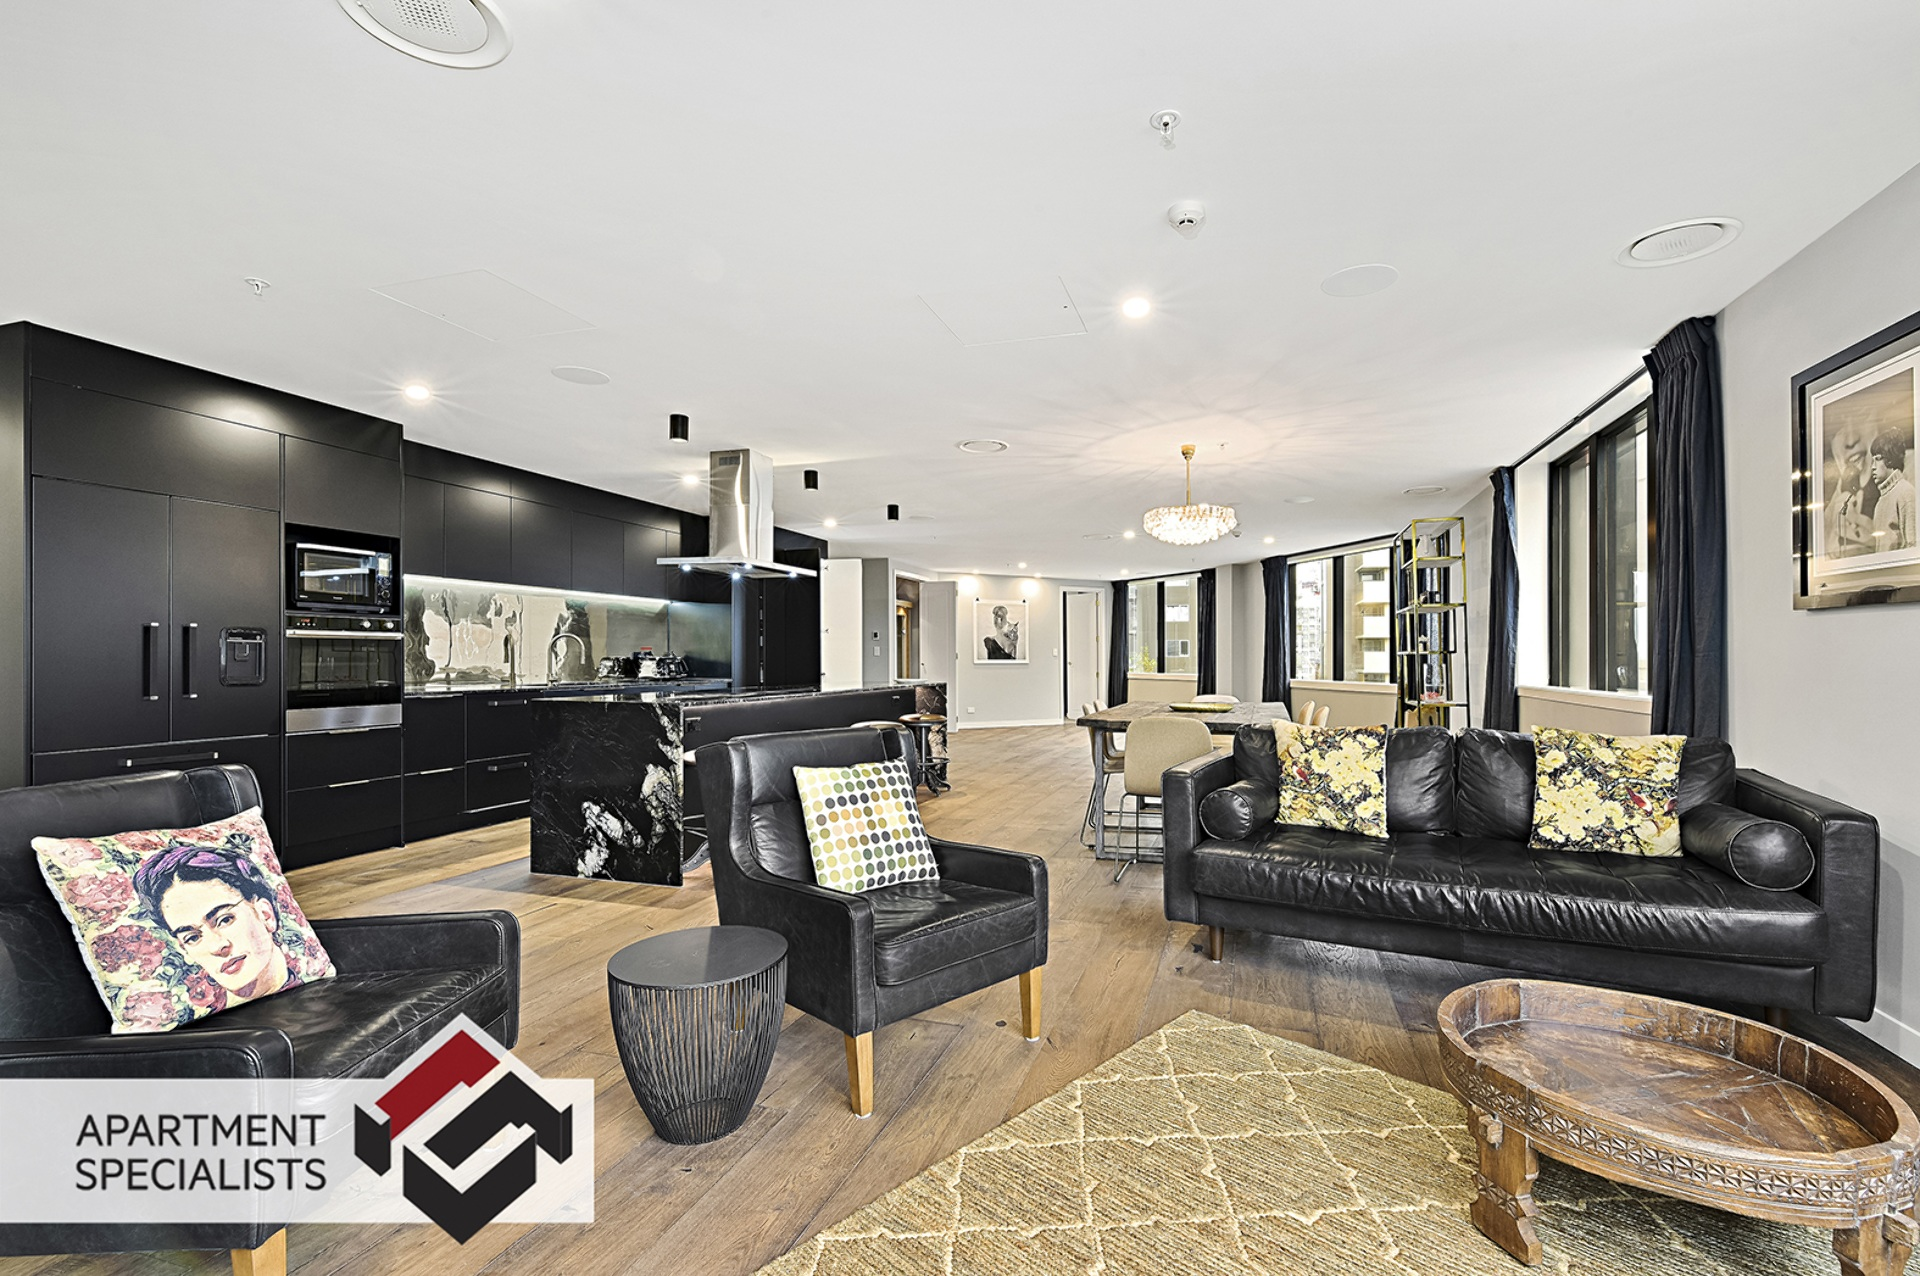 Hero | 126 Vincent Street, City Centre | Apartment Specialists